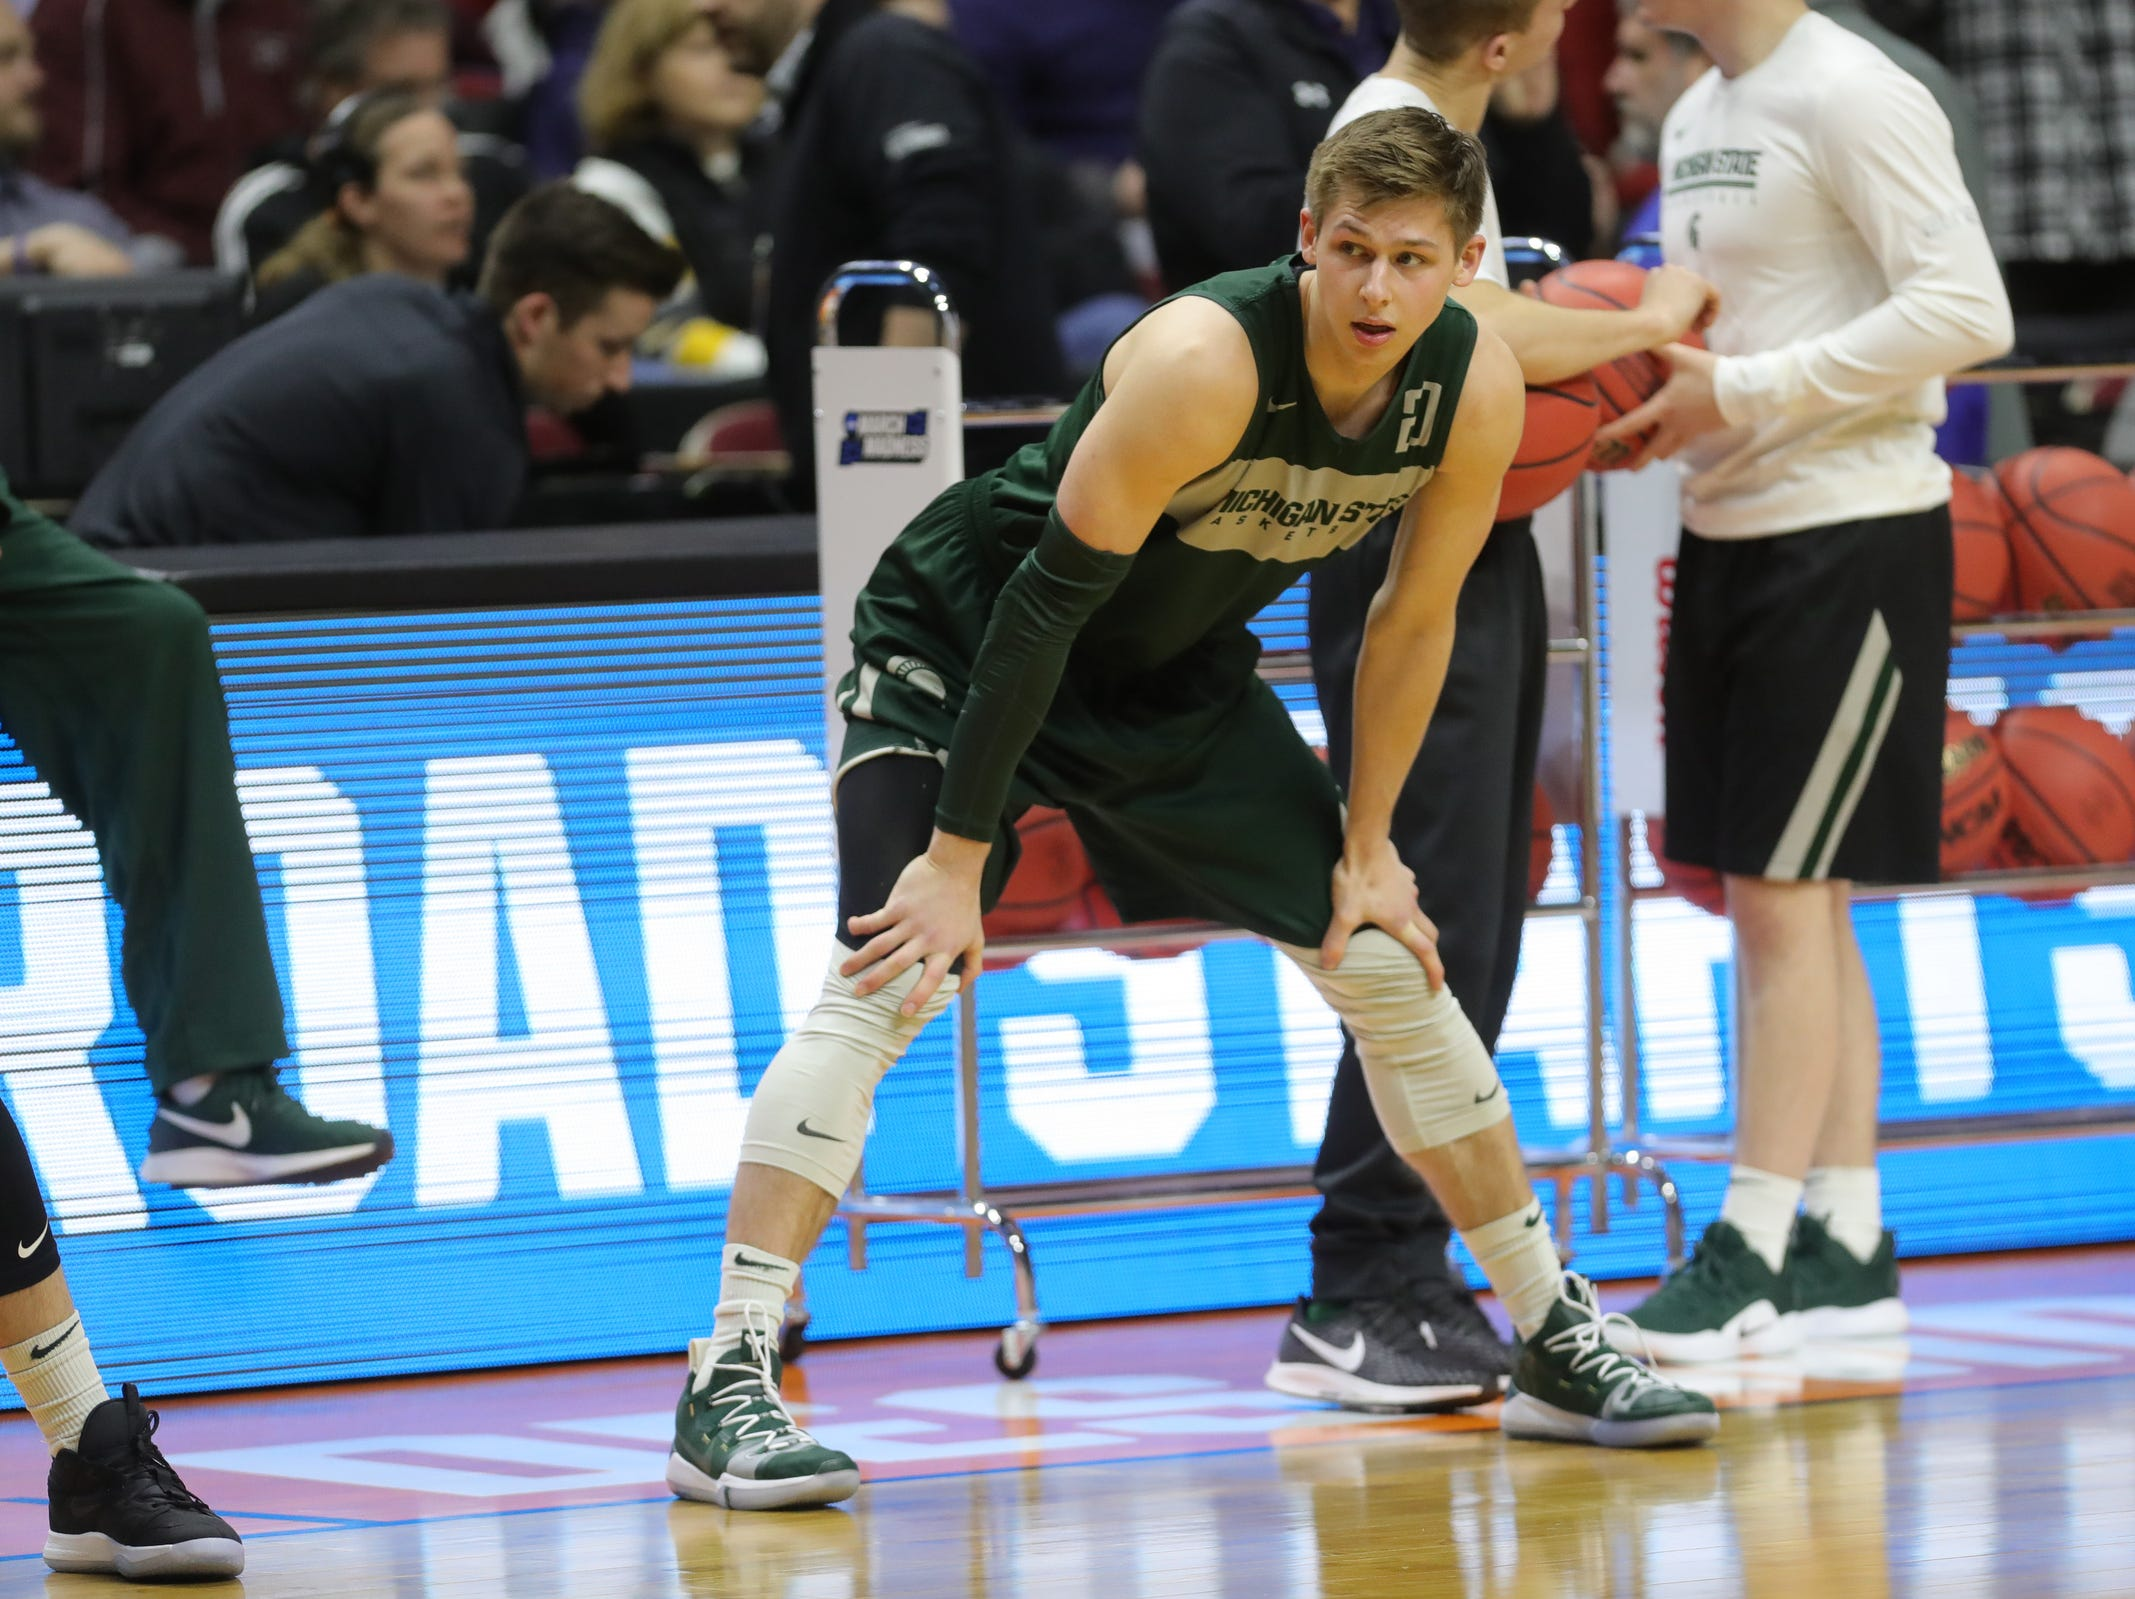 Michigan State guard Matt McQuaid goes through drills as his team prepares their first round the NCAA Tournament game against Bradley Wednesday, March 20, 2019 at Wells Fargo Arena in Des Moines, IA.